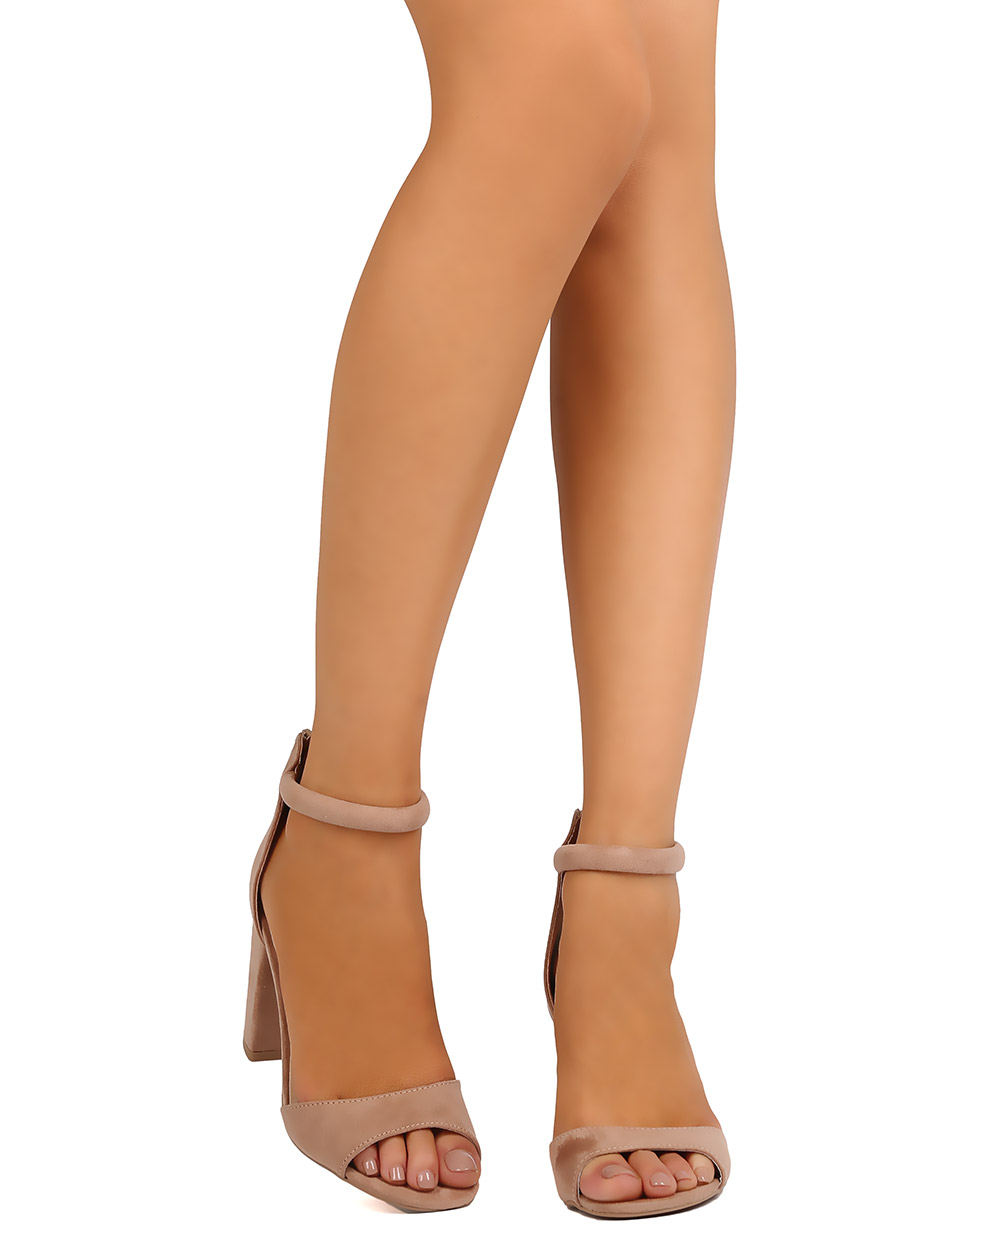 New Women Qupid Chester-11 Faux Suede Peep Toe Lace up Chunky Heel